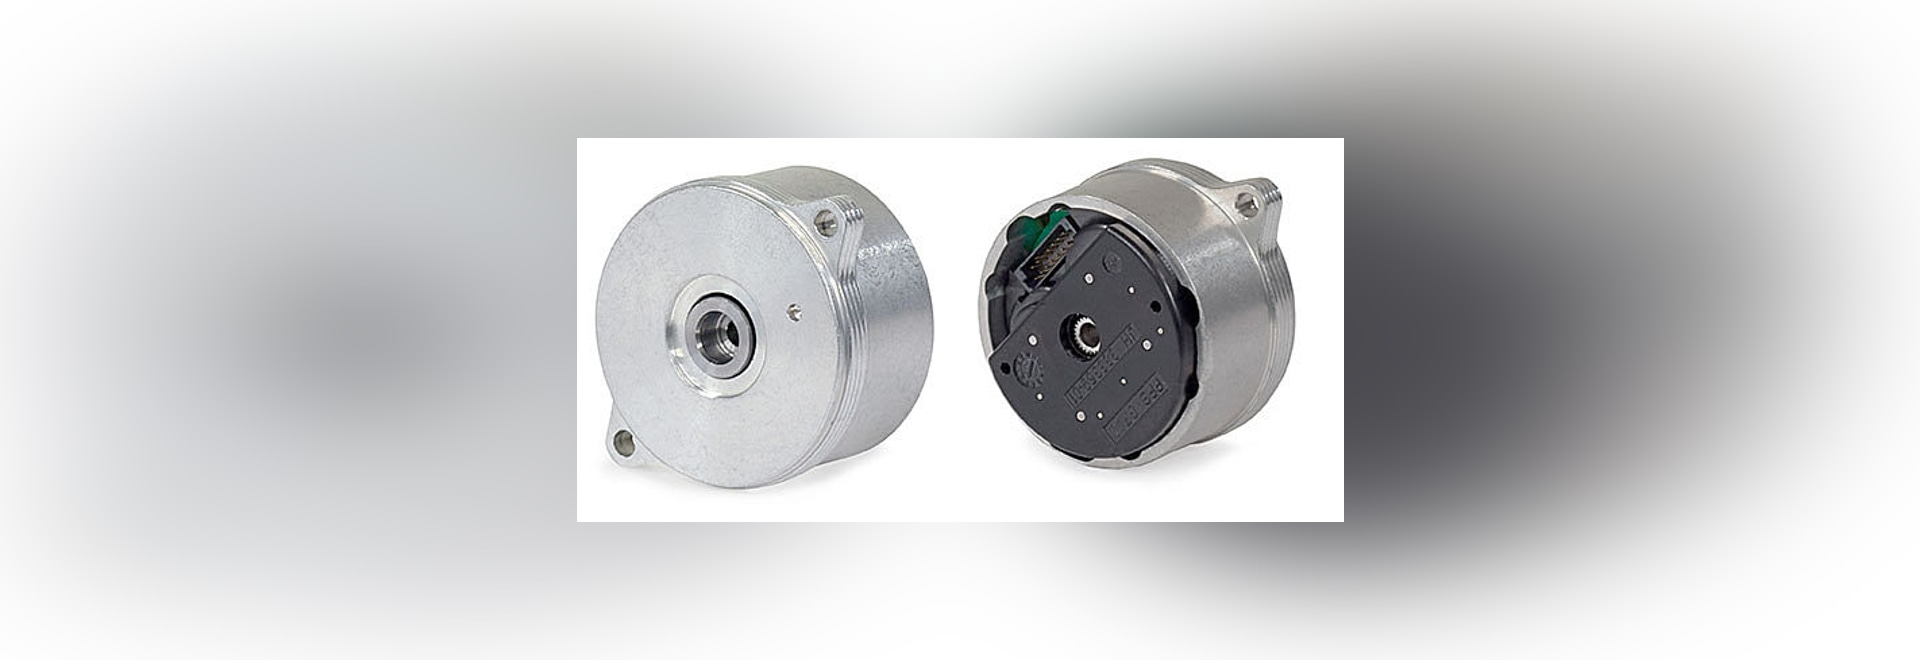 Inductive multiturn rotary encoders with improved control quality Compact, Durable and Safe in Applications up to SIL 3